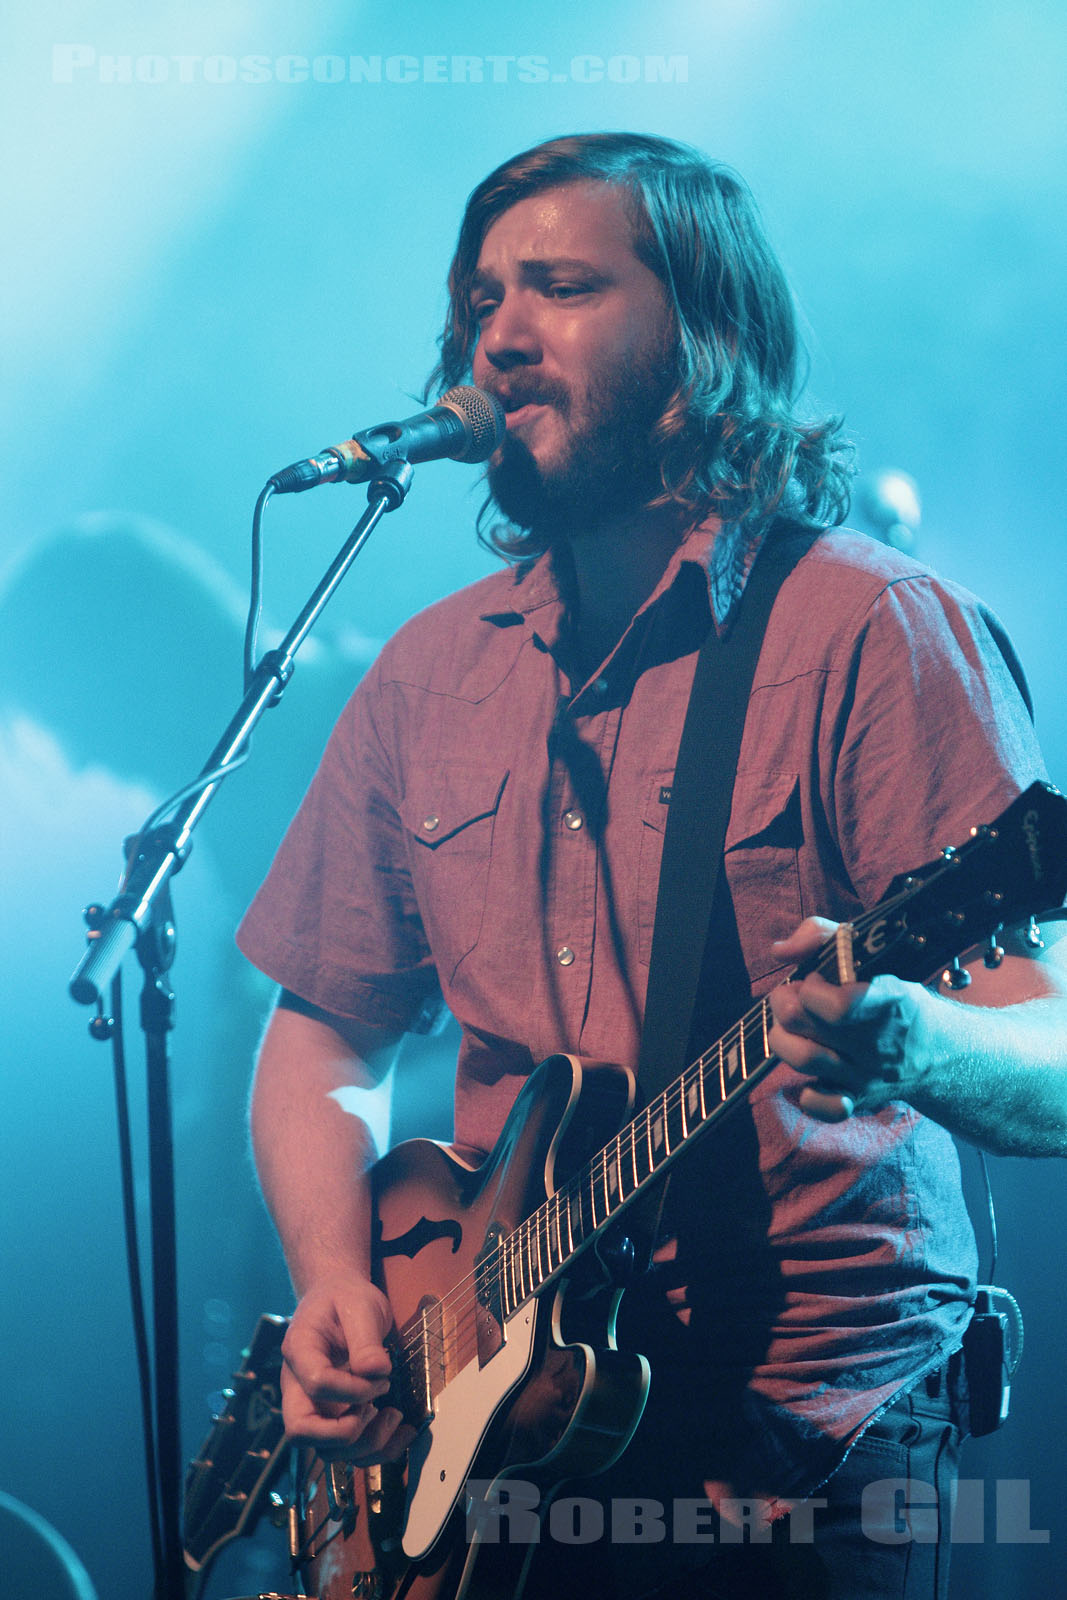 MIDLAKE - 2010-11-04 - PARIS - La Cigale